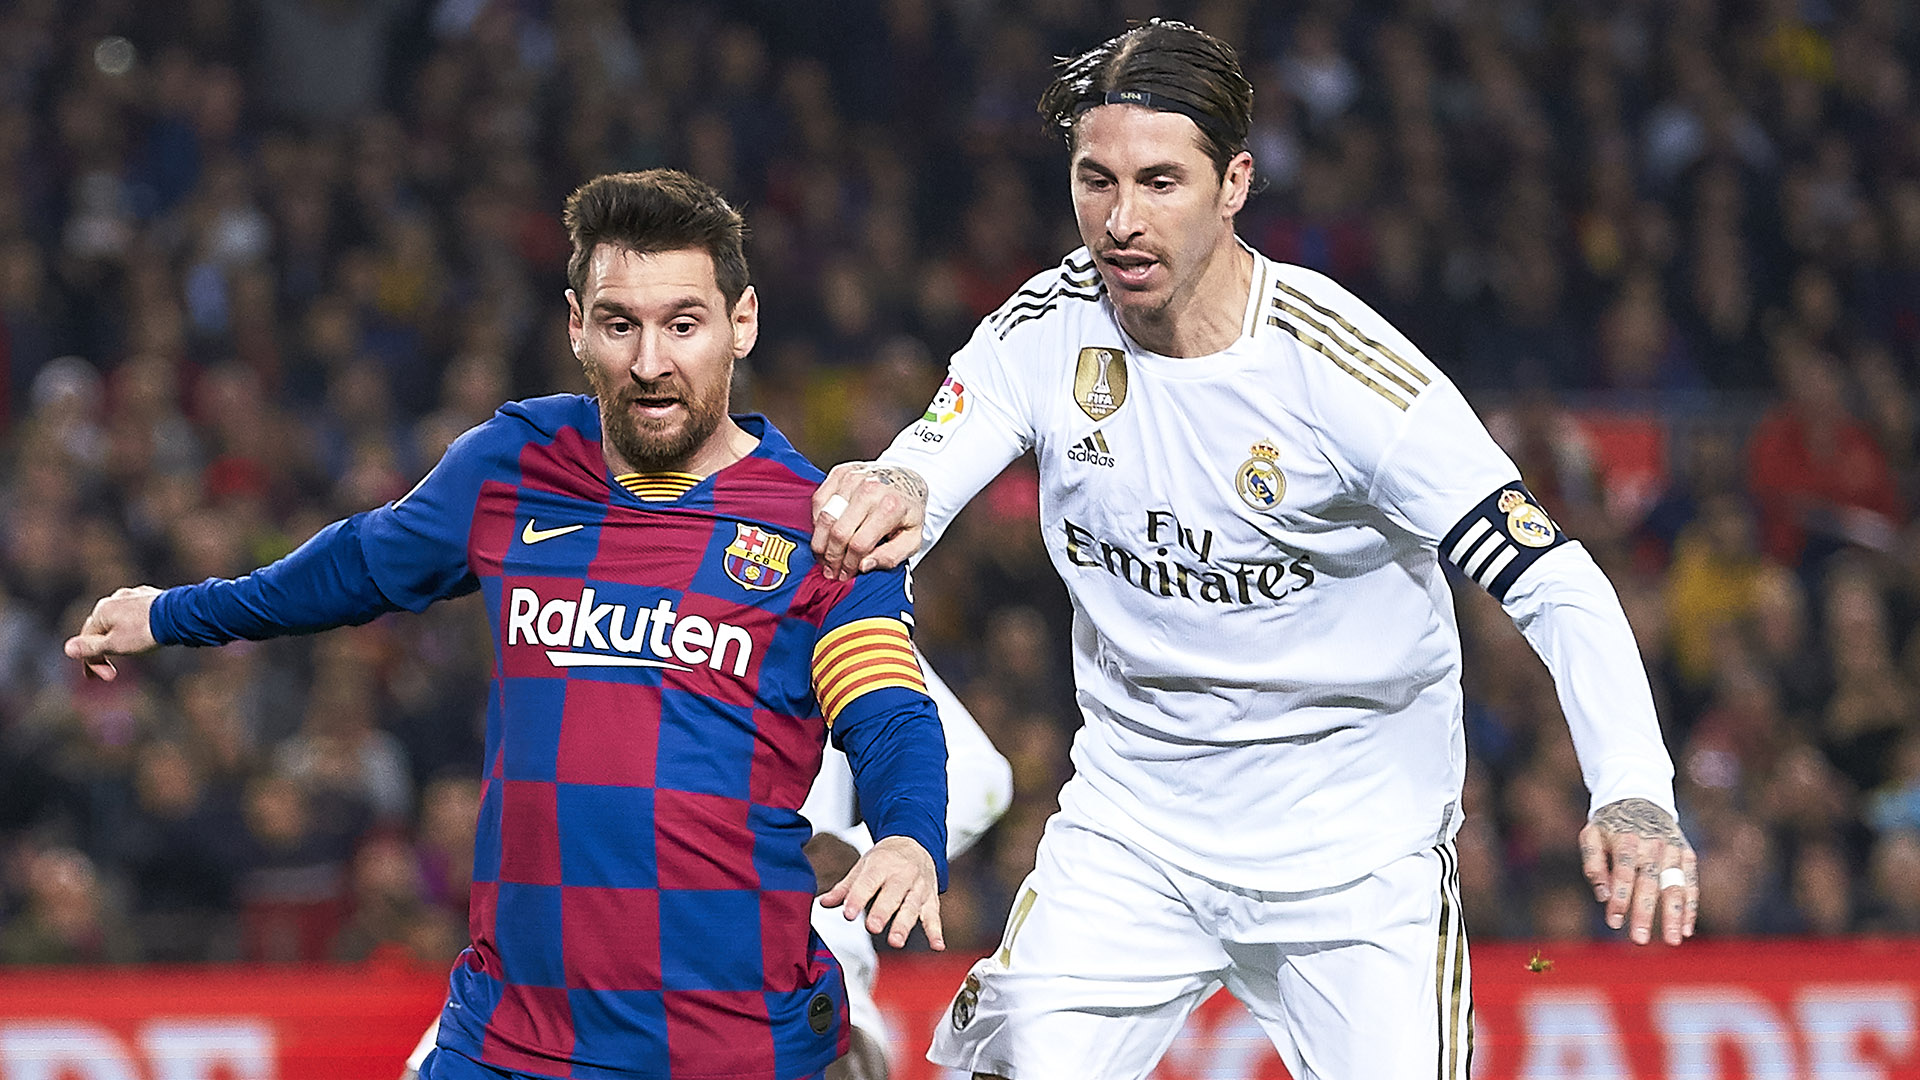 Video: Messi has earned the right to decide on his Barcelona exit - Ramos